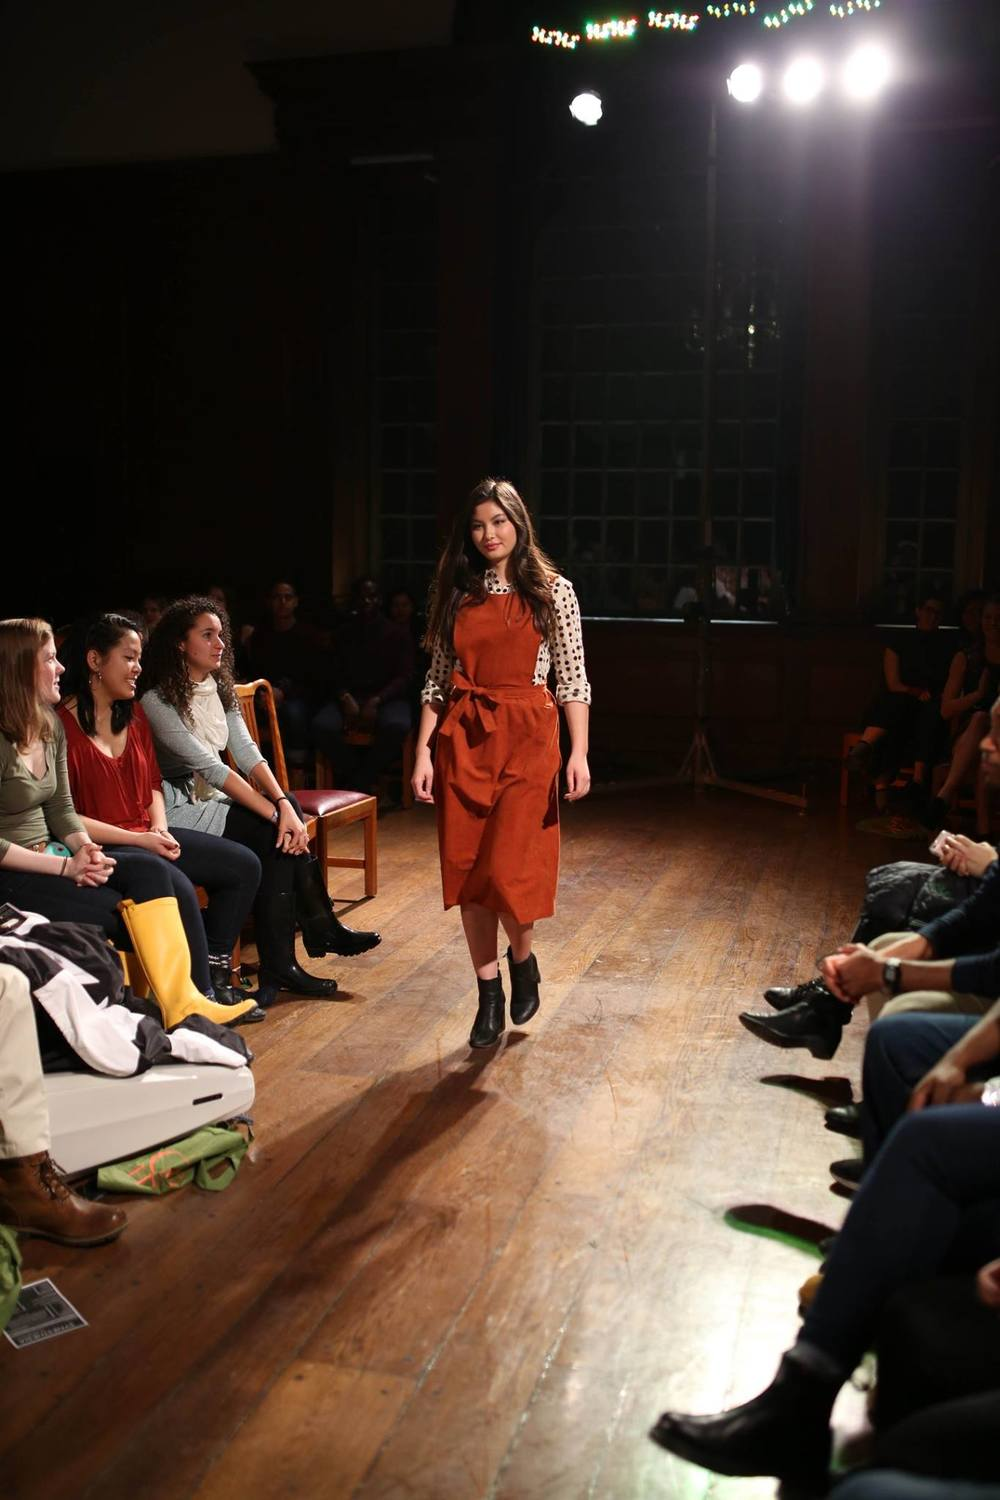 yale_Y_fashion_house_fashion_show_vintanthromodern_24.jpg